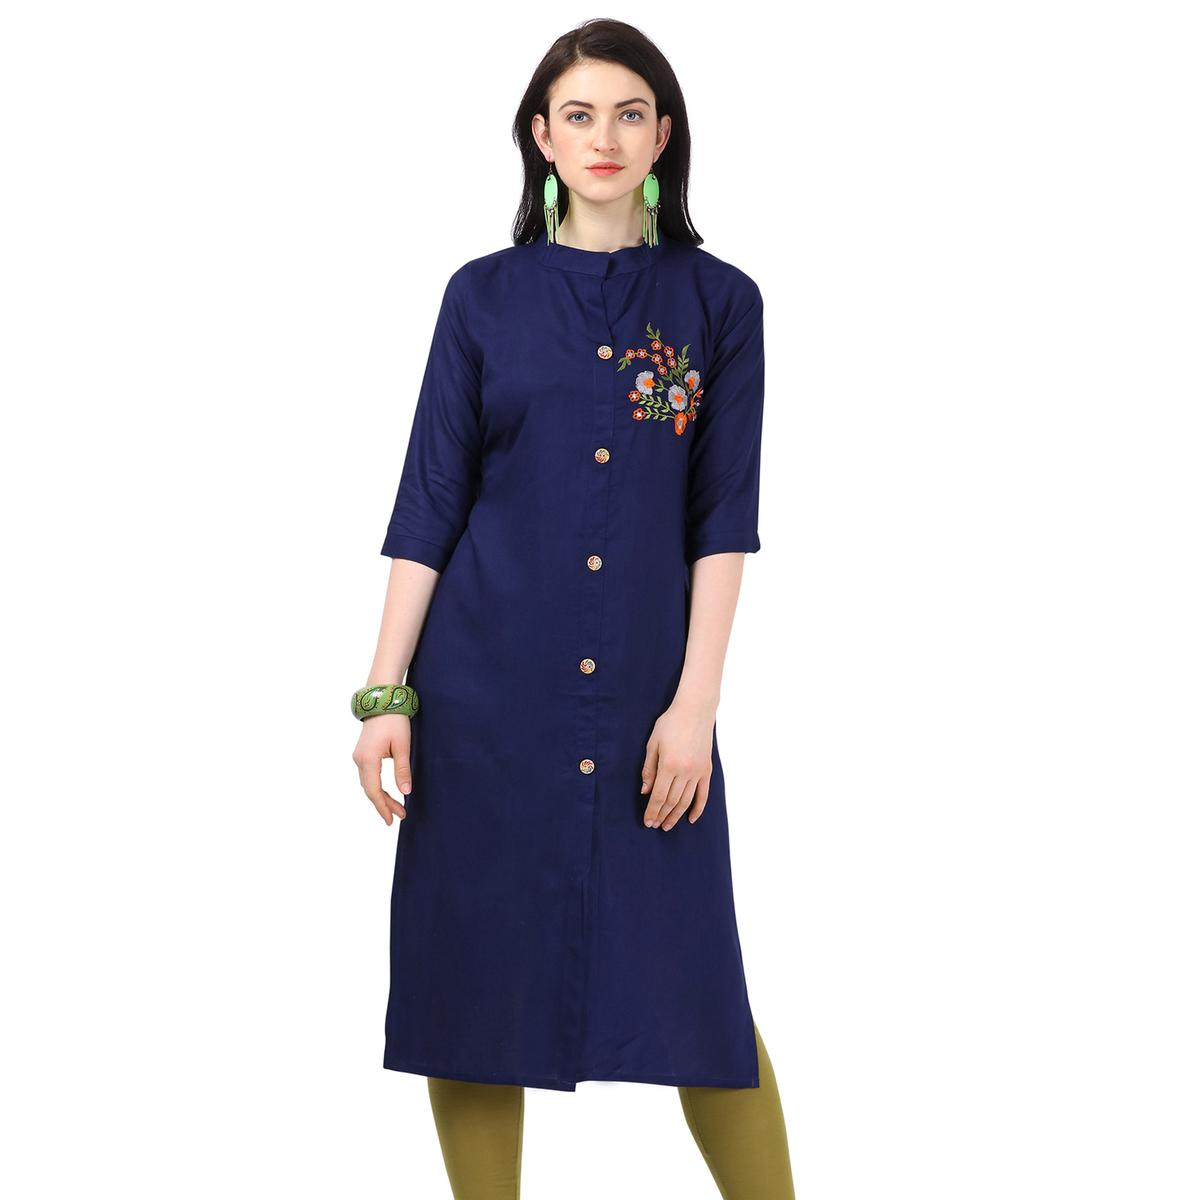 Engrossing Navy Blue Colored Partywear Embroidered Rayon Kurti